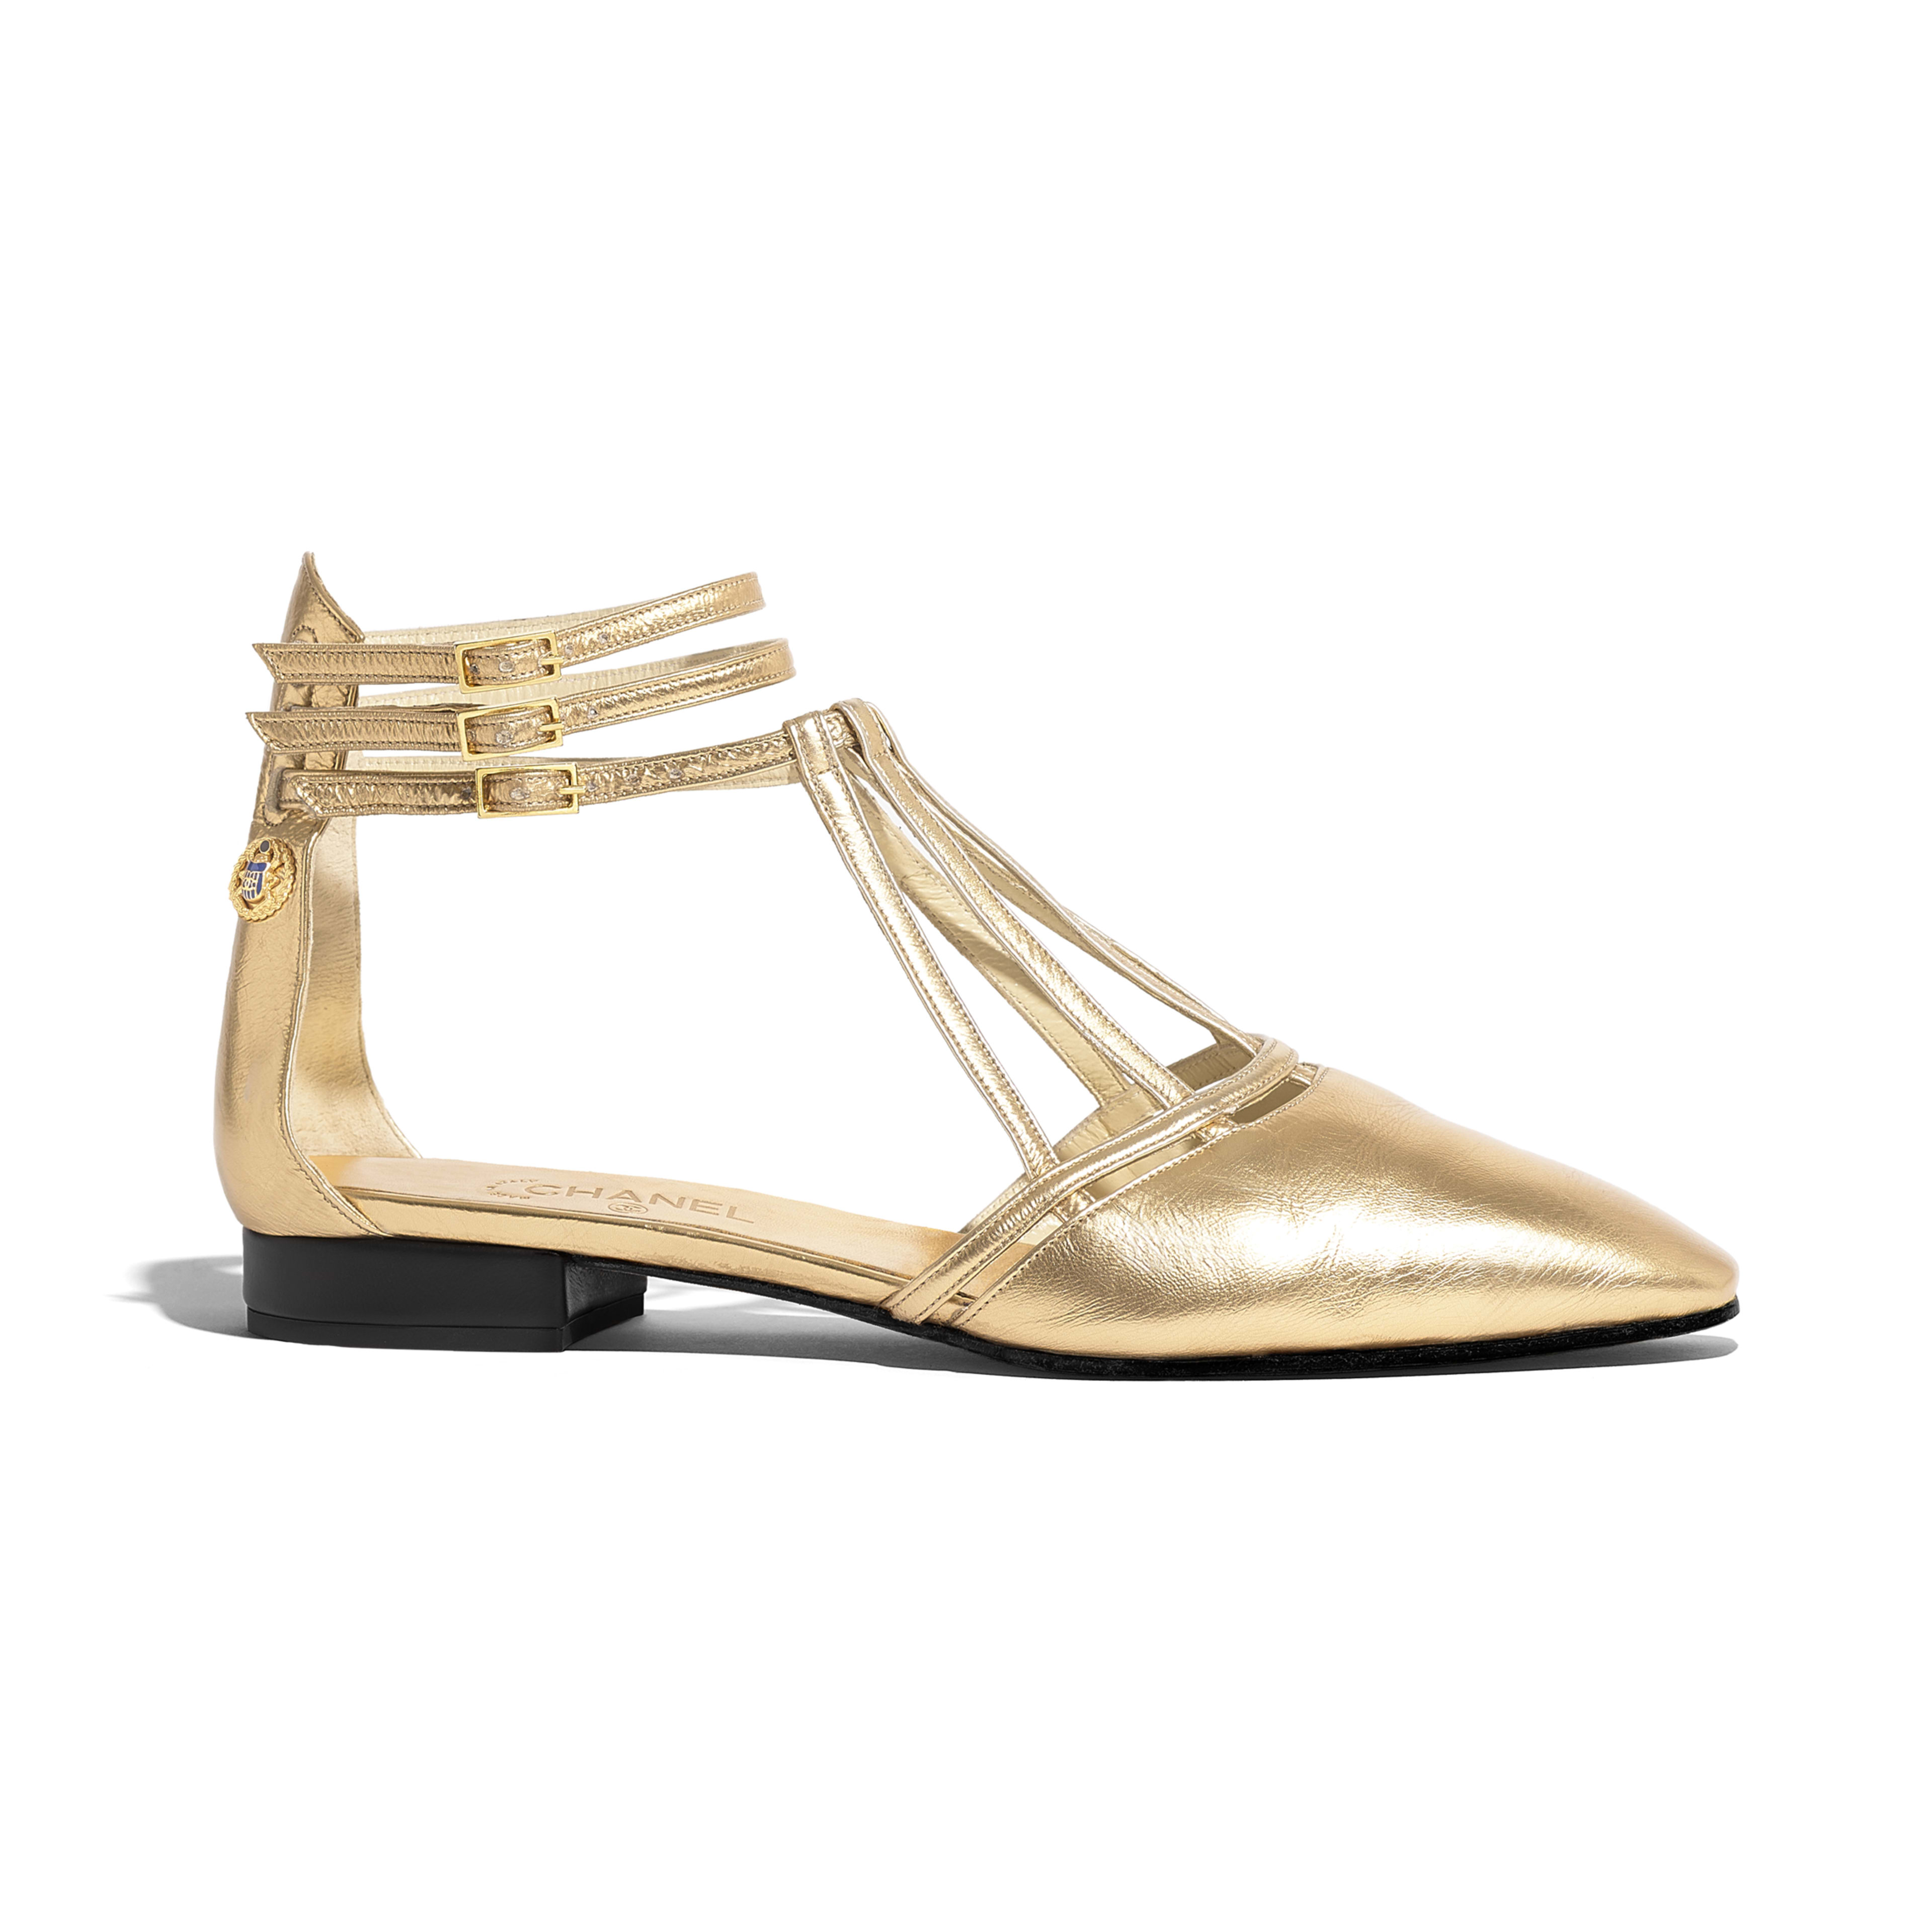 Sandals - Gold - Laminated Lambskin - Default view - see full sized version